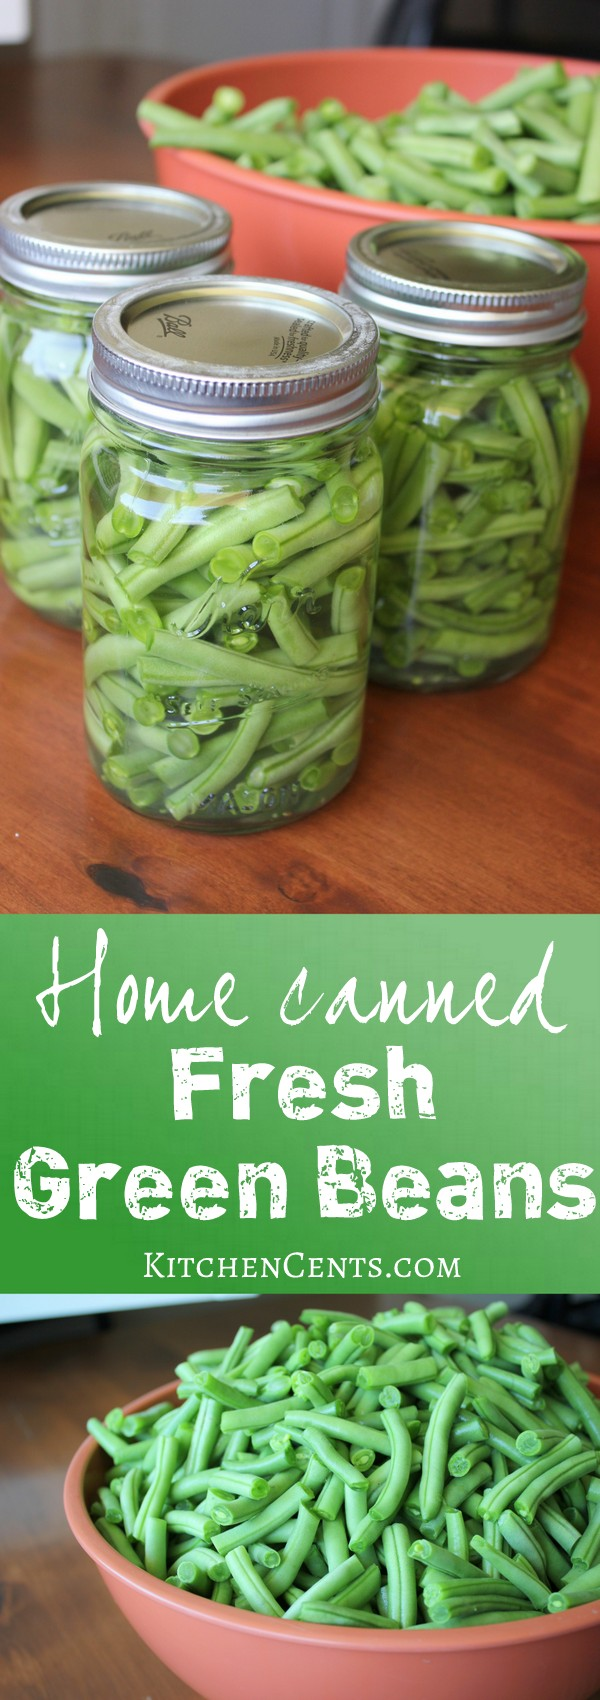 home-canned-fresh-green-beans | KitchenCents.com